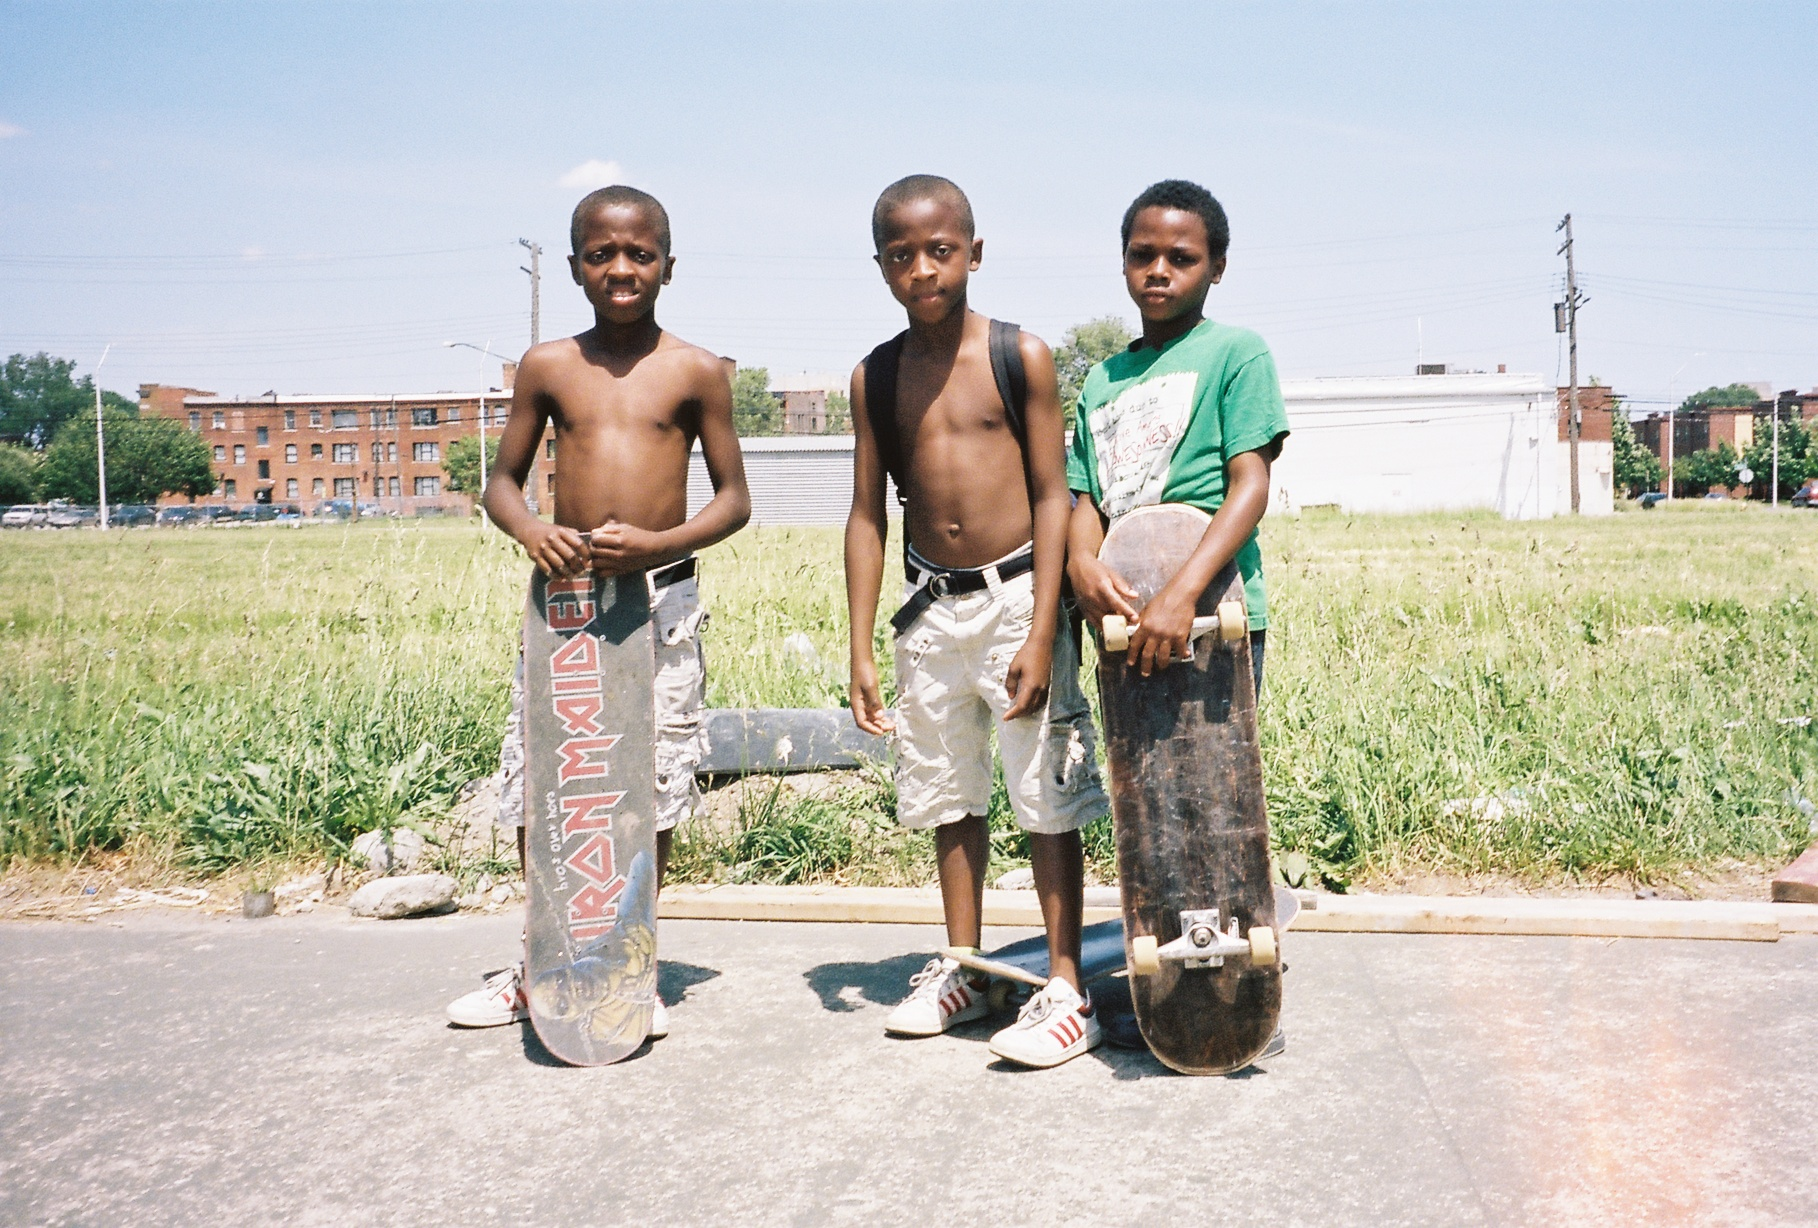 Amir, Rashad, and Jamaree. 2017.